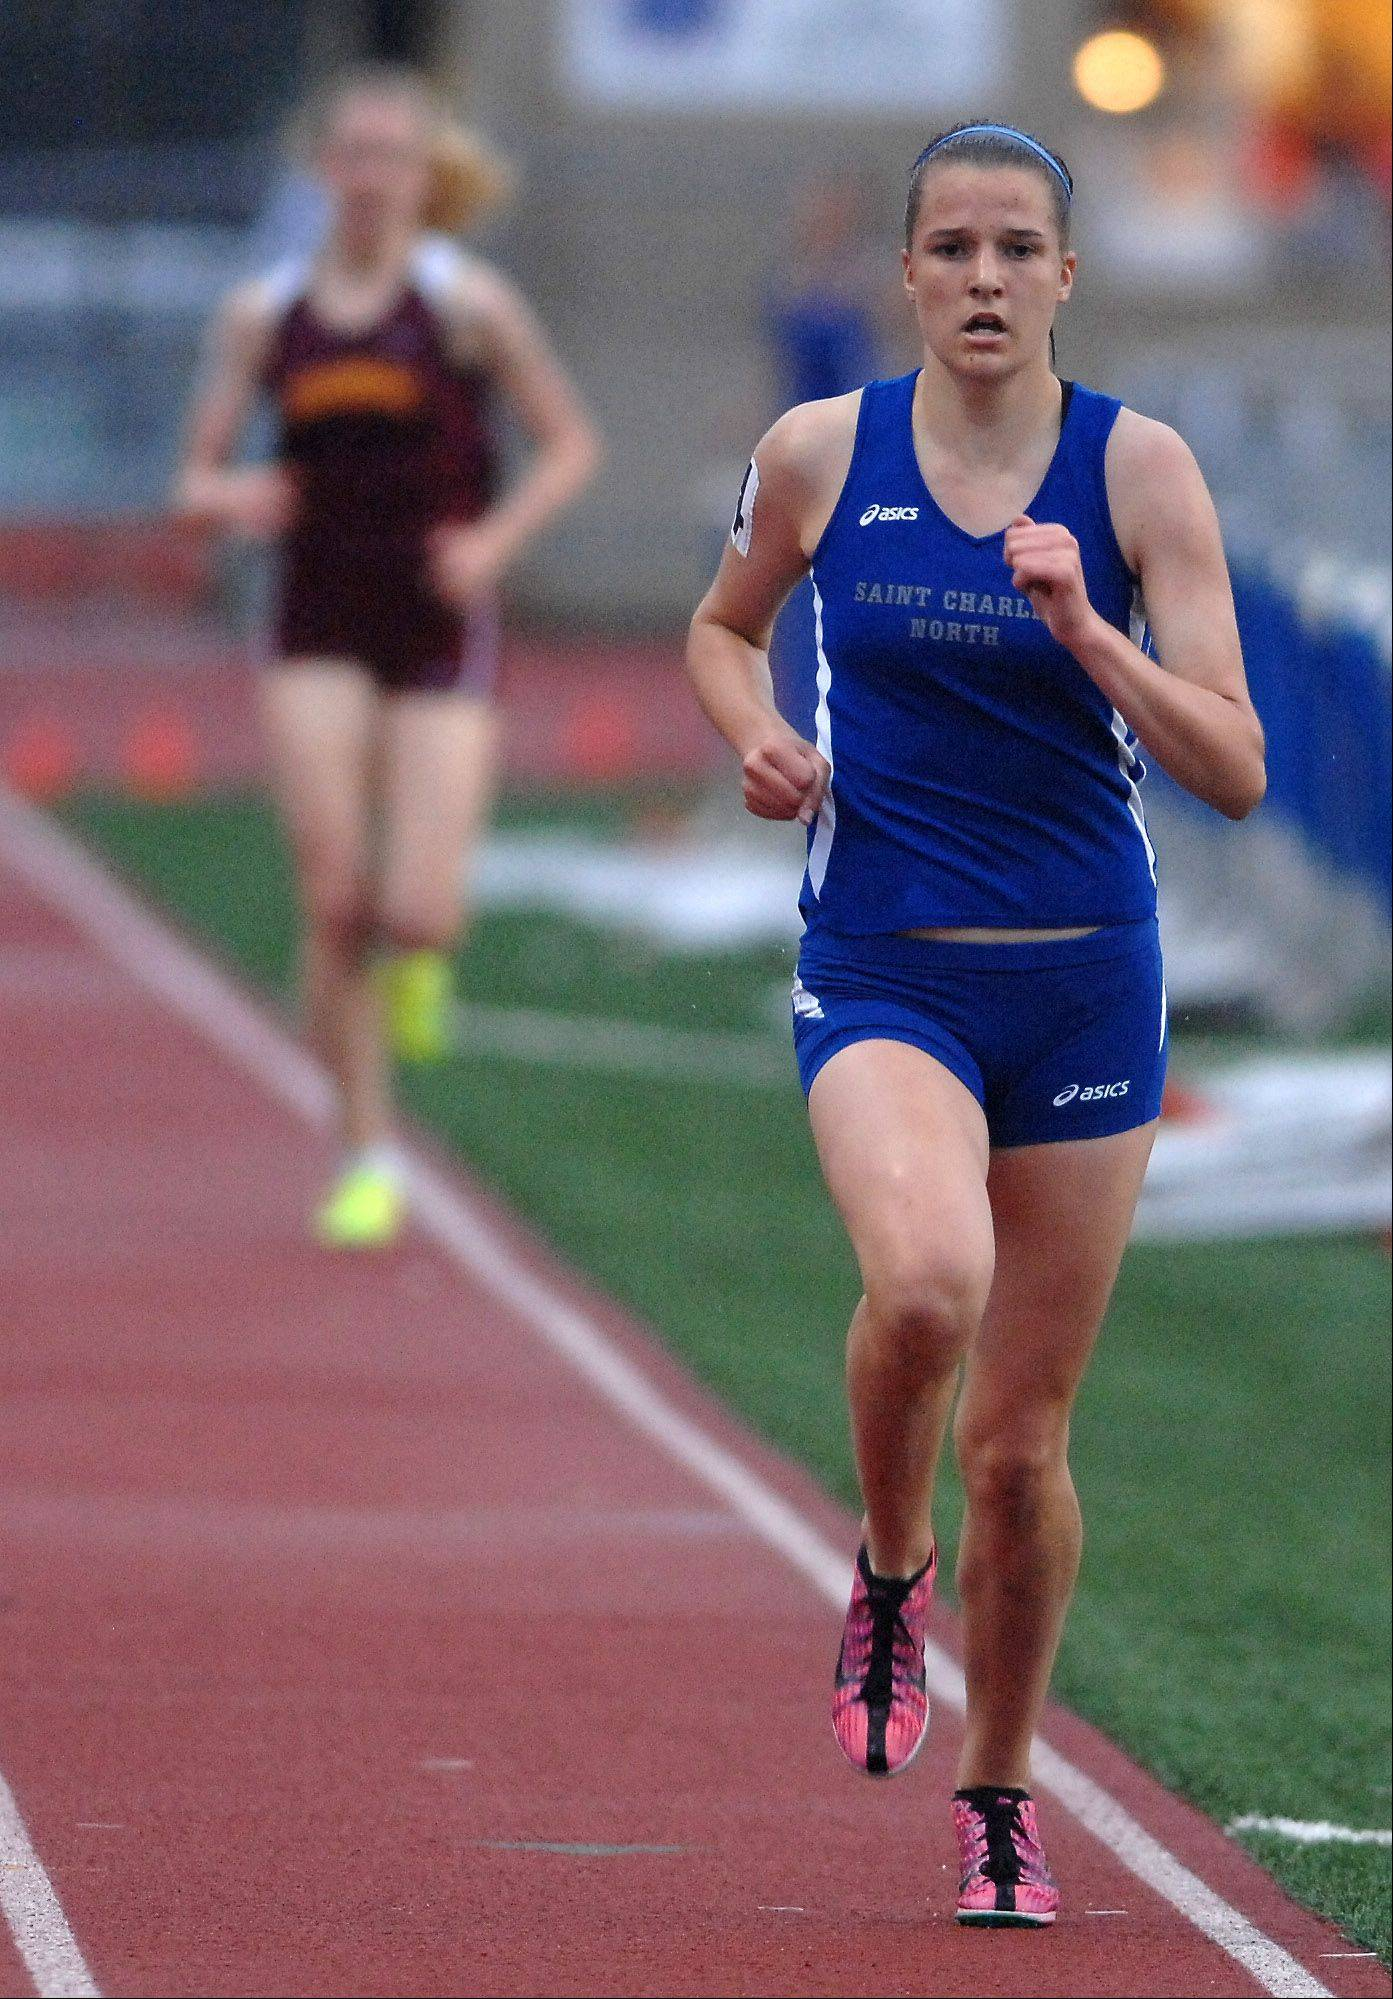 Ashley England of St. Charles North finished second in the 3,200.